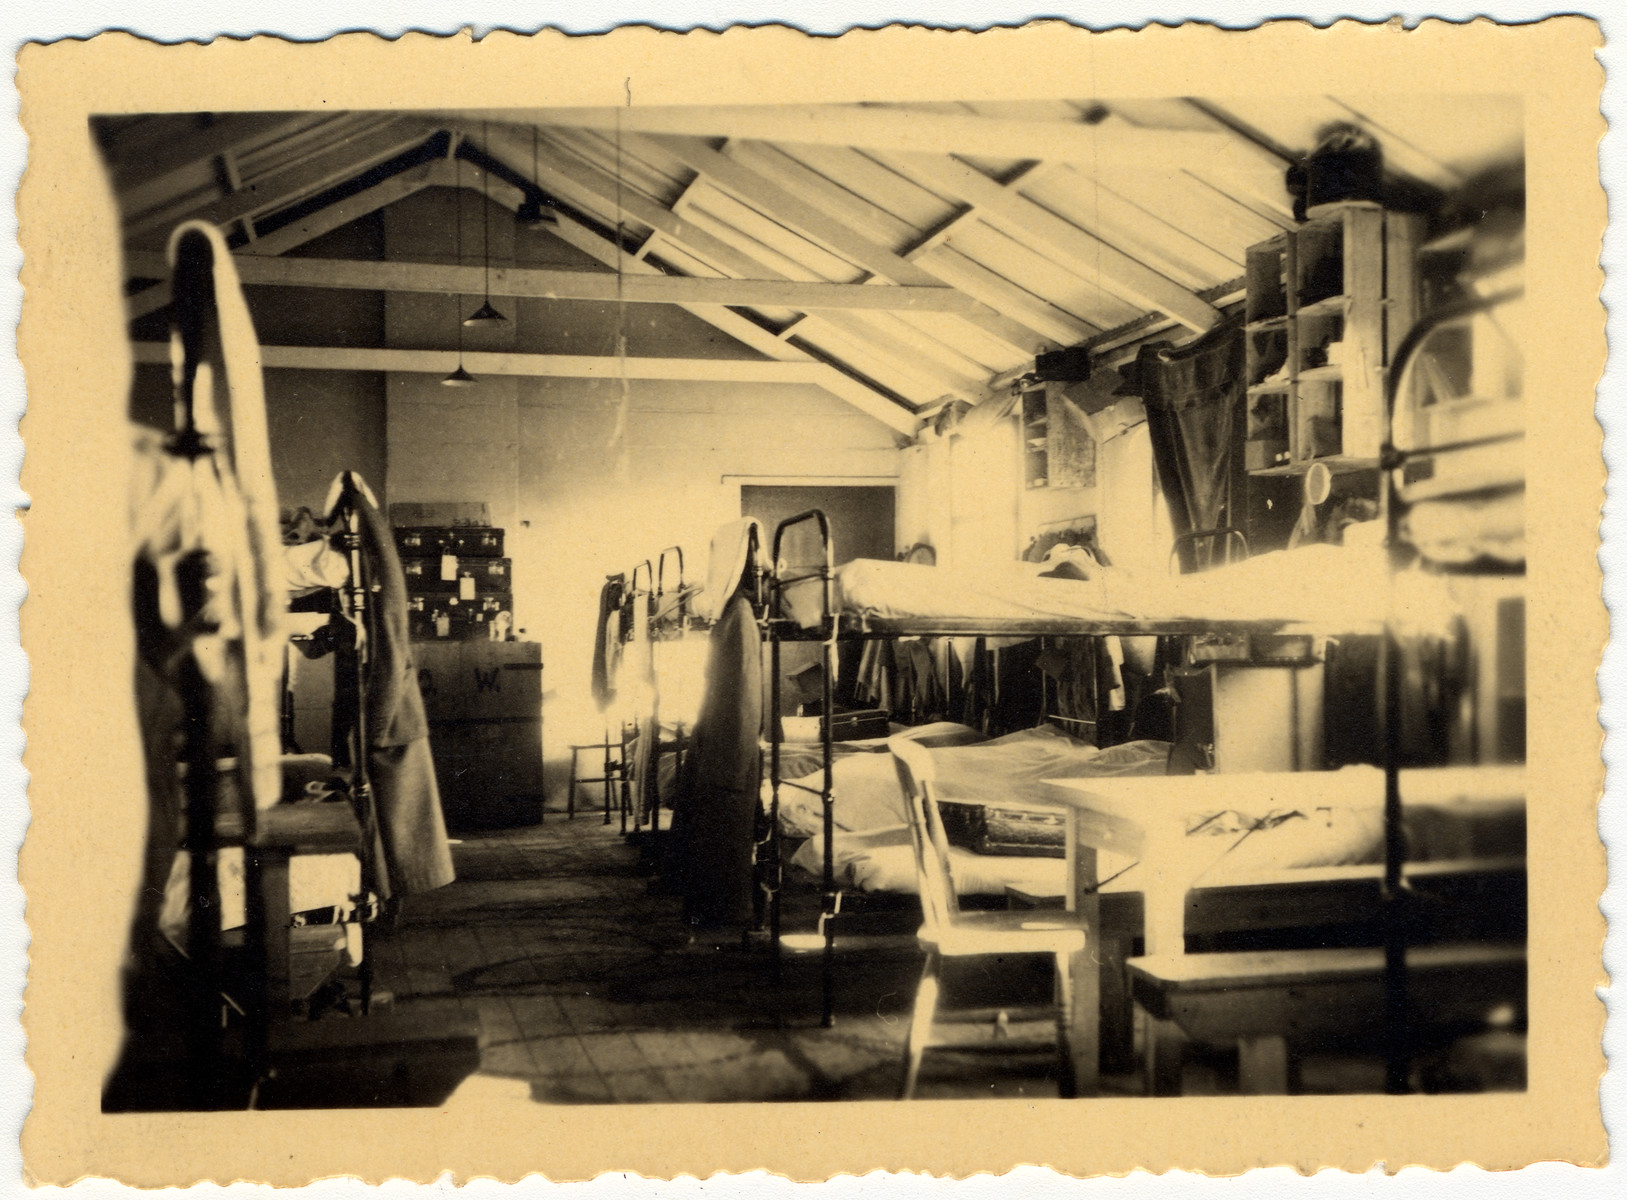 Interior view of the sleeping quarters of hut 41/1 in the Kitchener refugee camp.